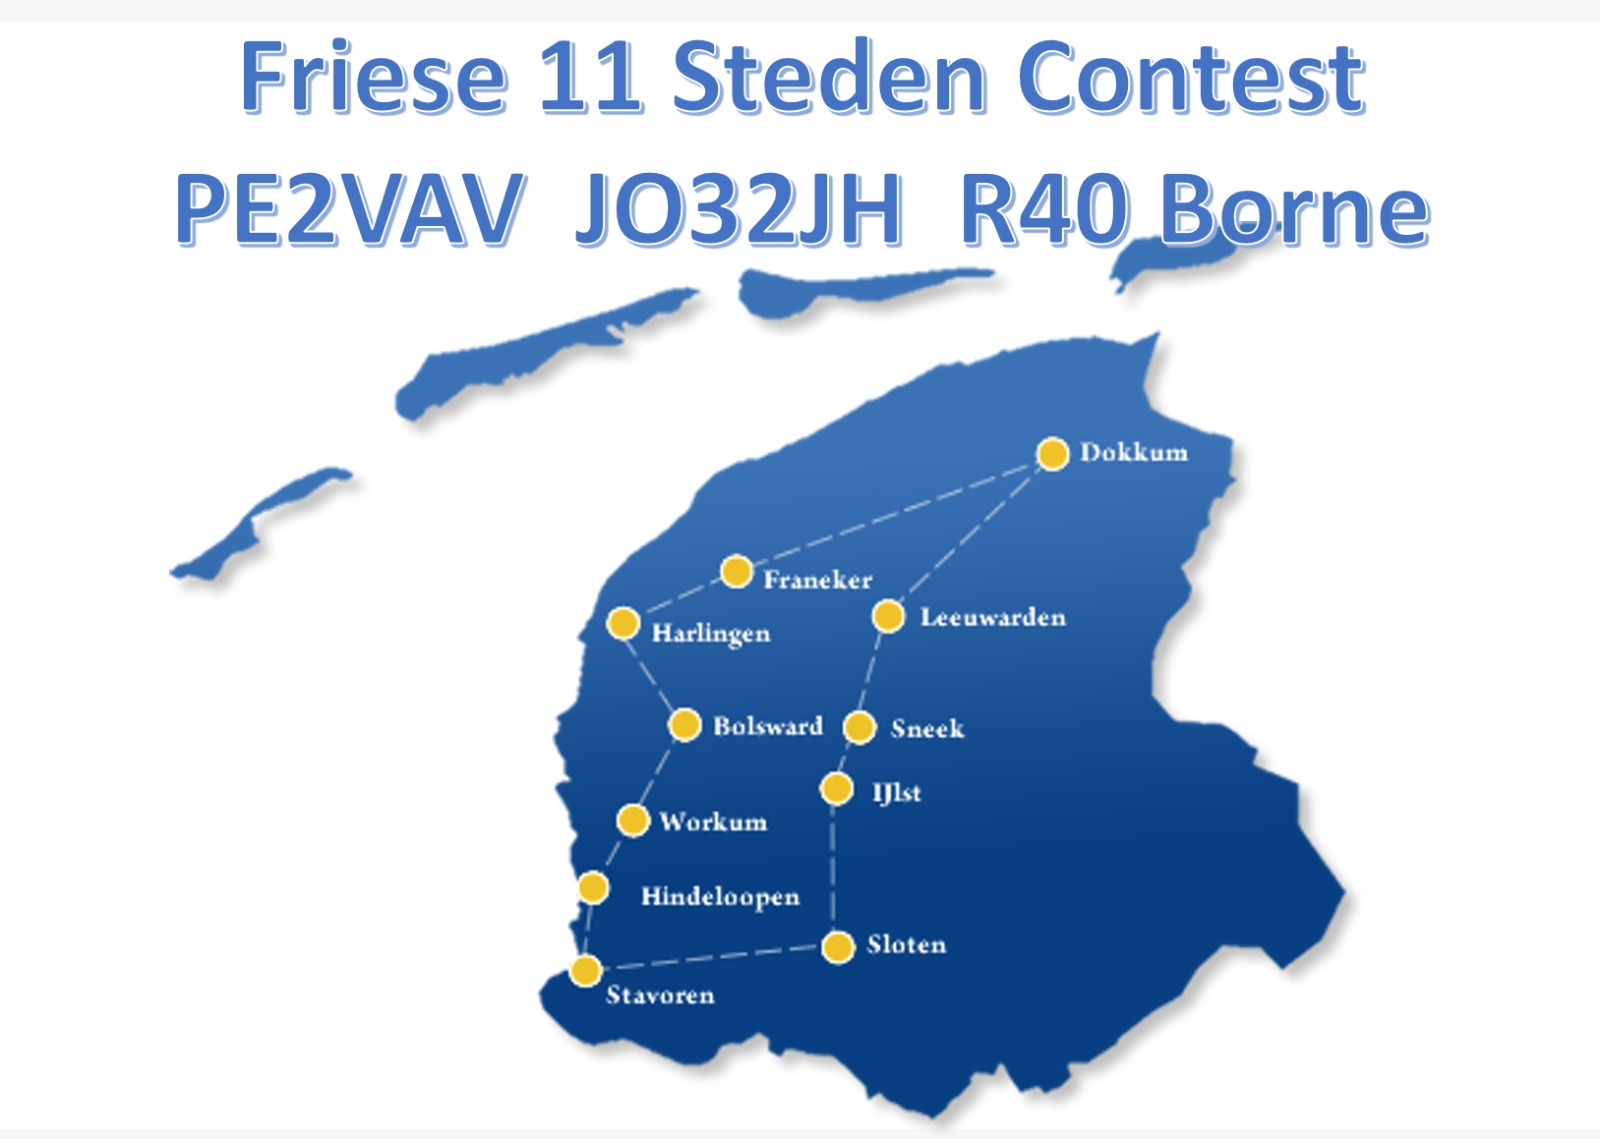 Friese elfstedencontest 2019